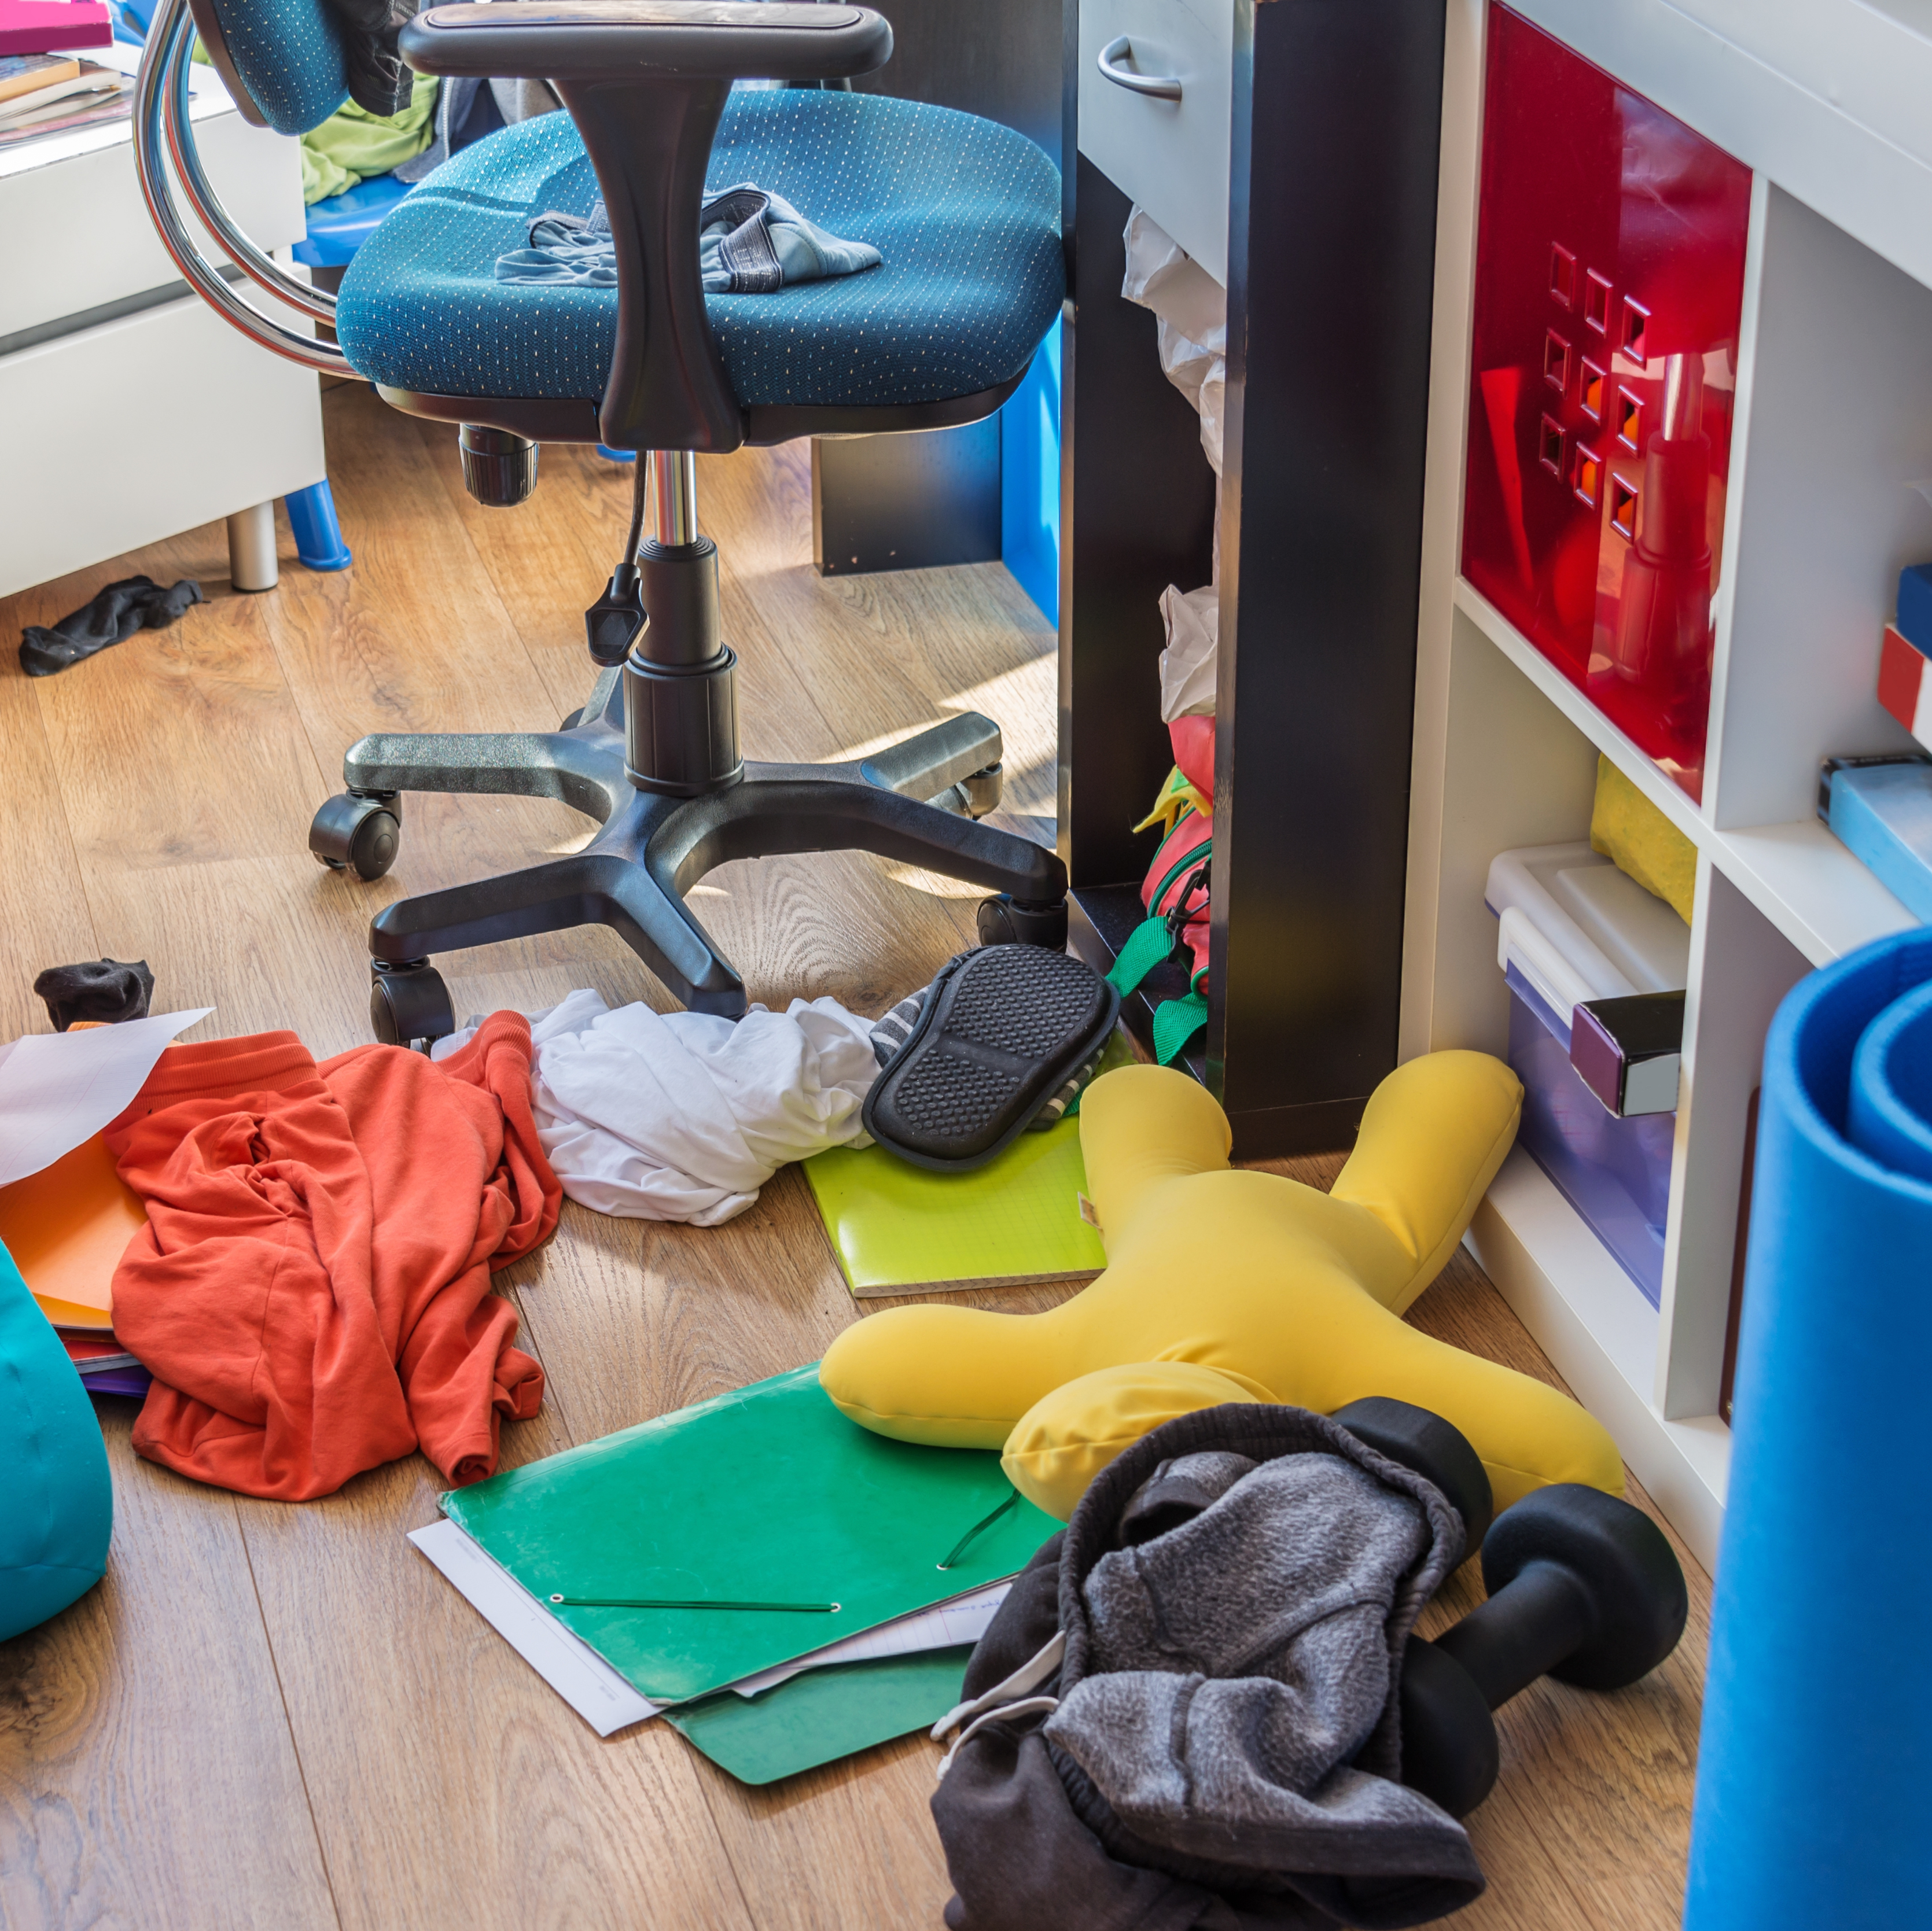 an untidy, messy, cluttered room with clothes and items scattered on the floor